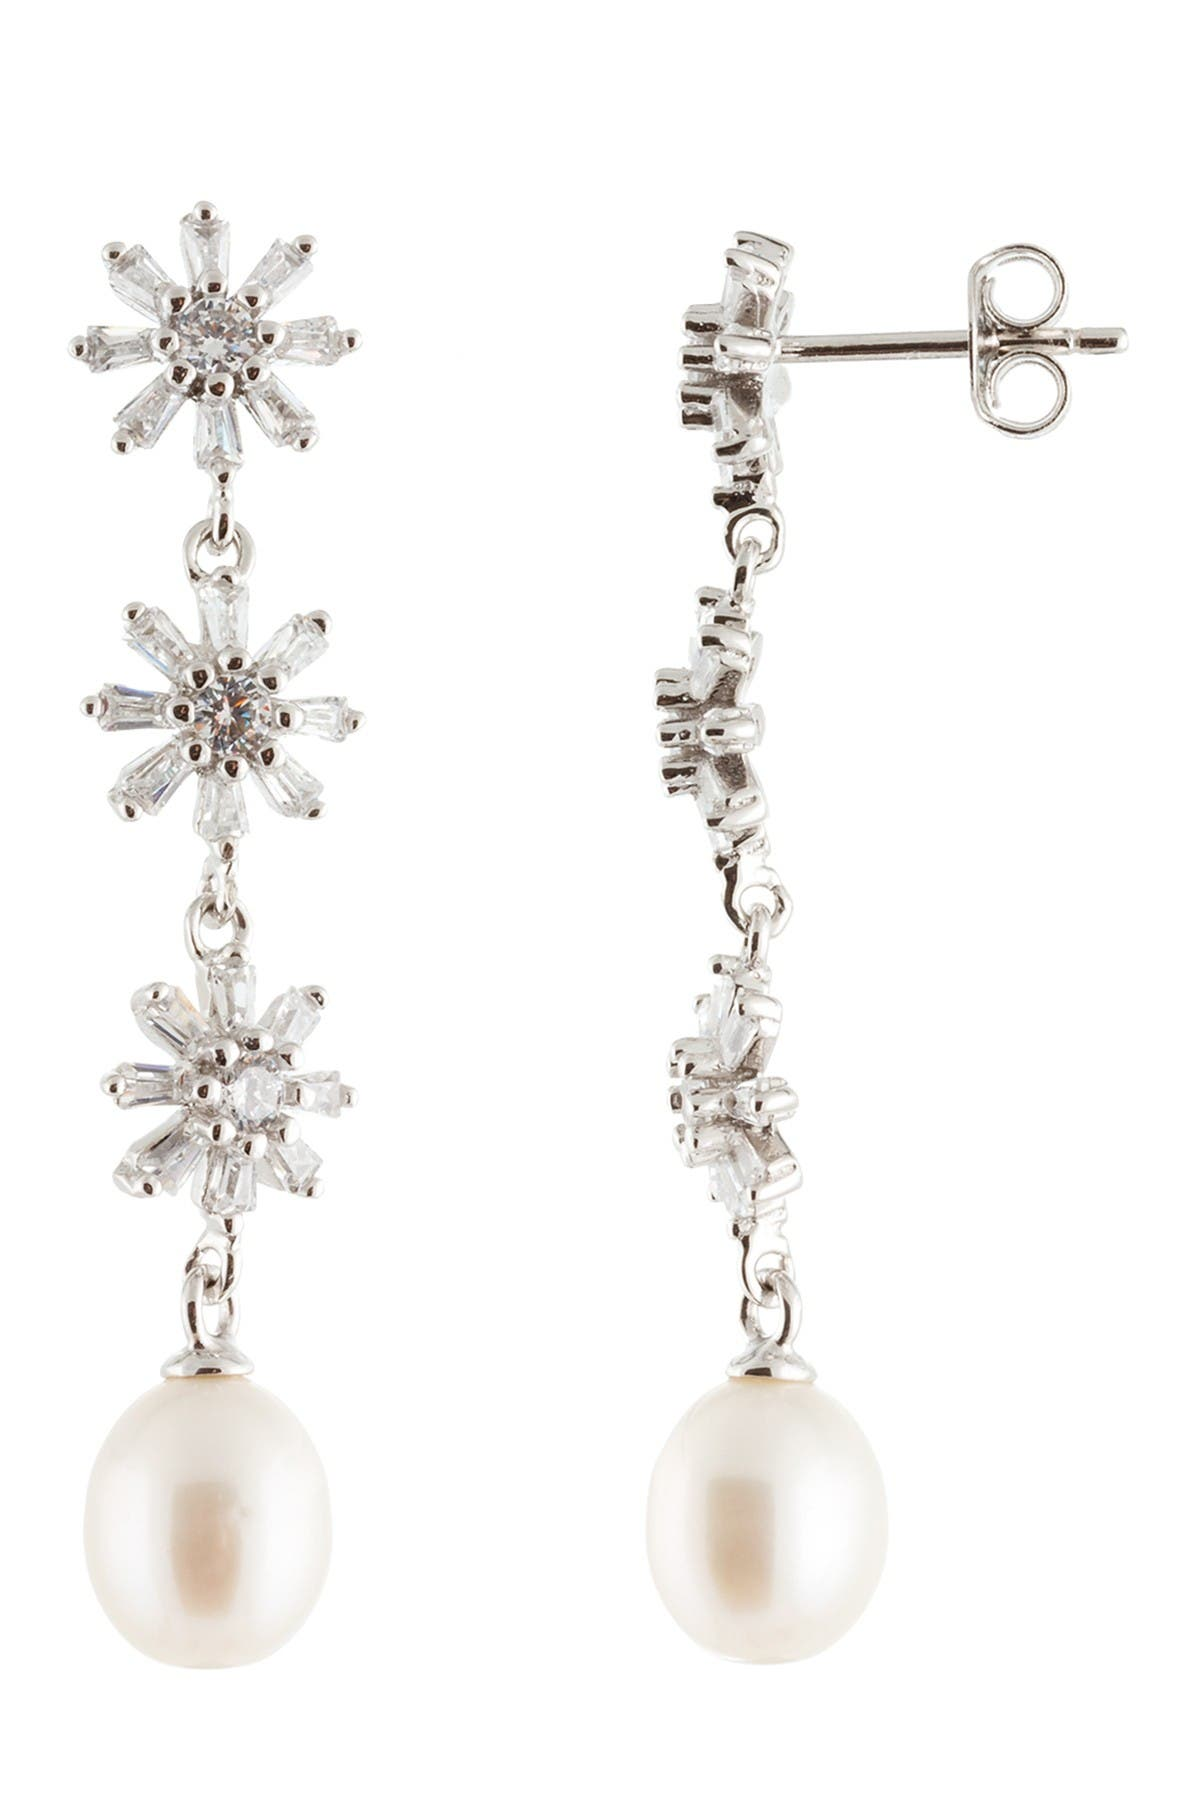 Image of Splendid Pearls Sterling Silver CZ & 7.5-8mm Cultured Freshwater Pearl Floral Linear Drop Earrings